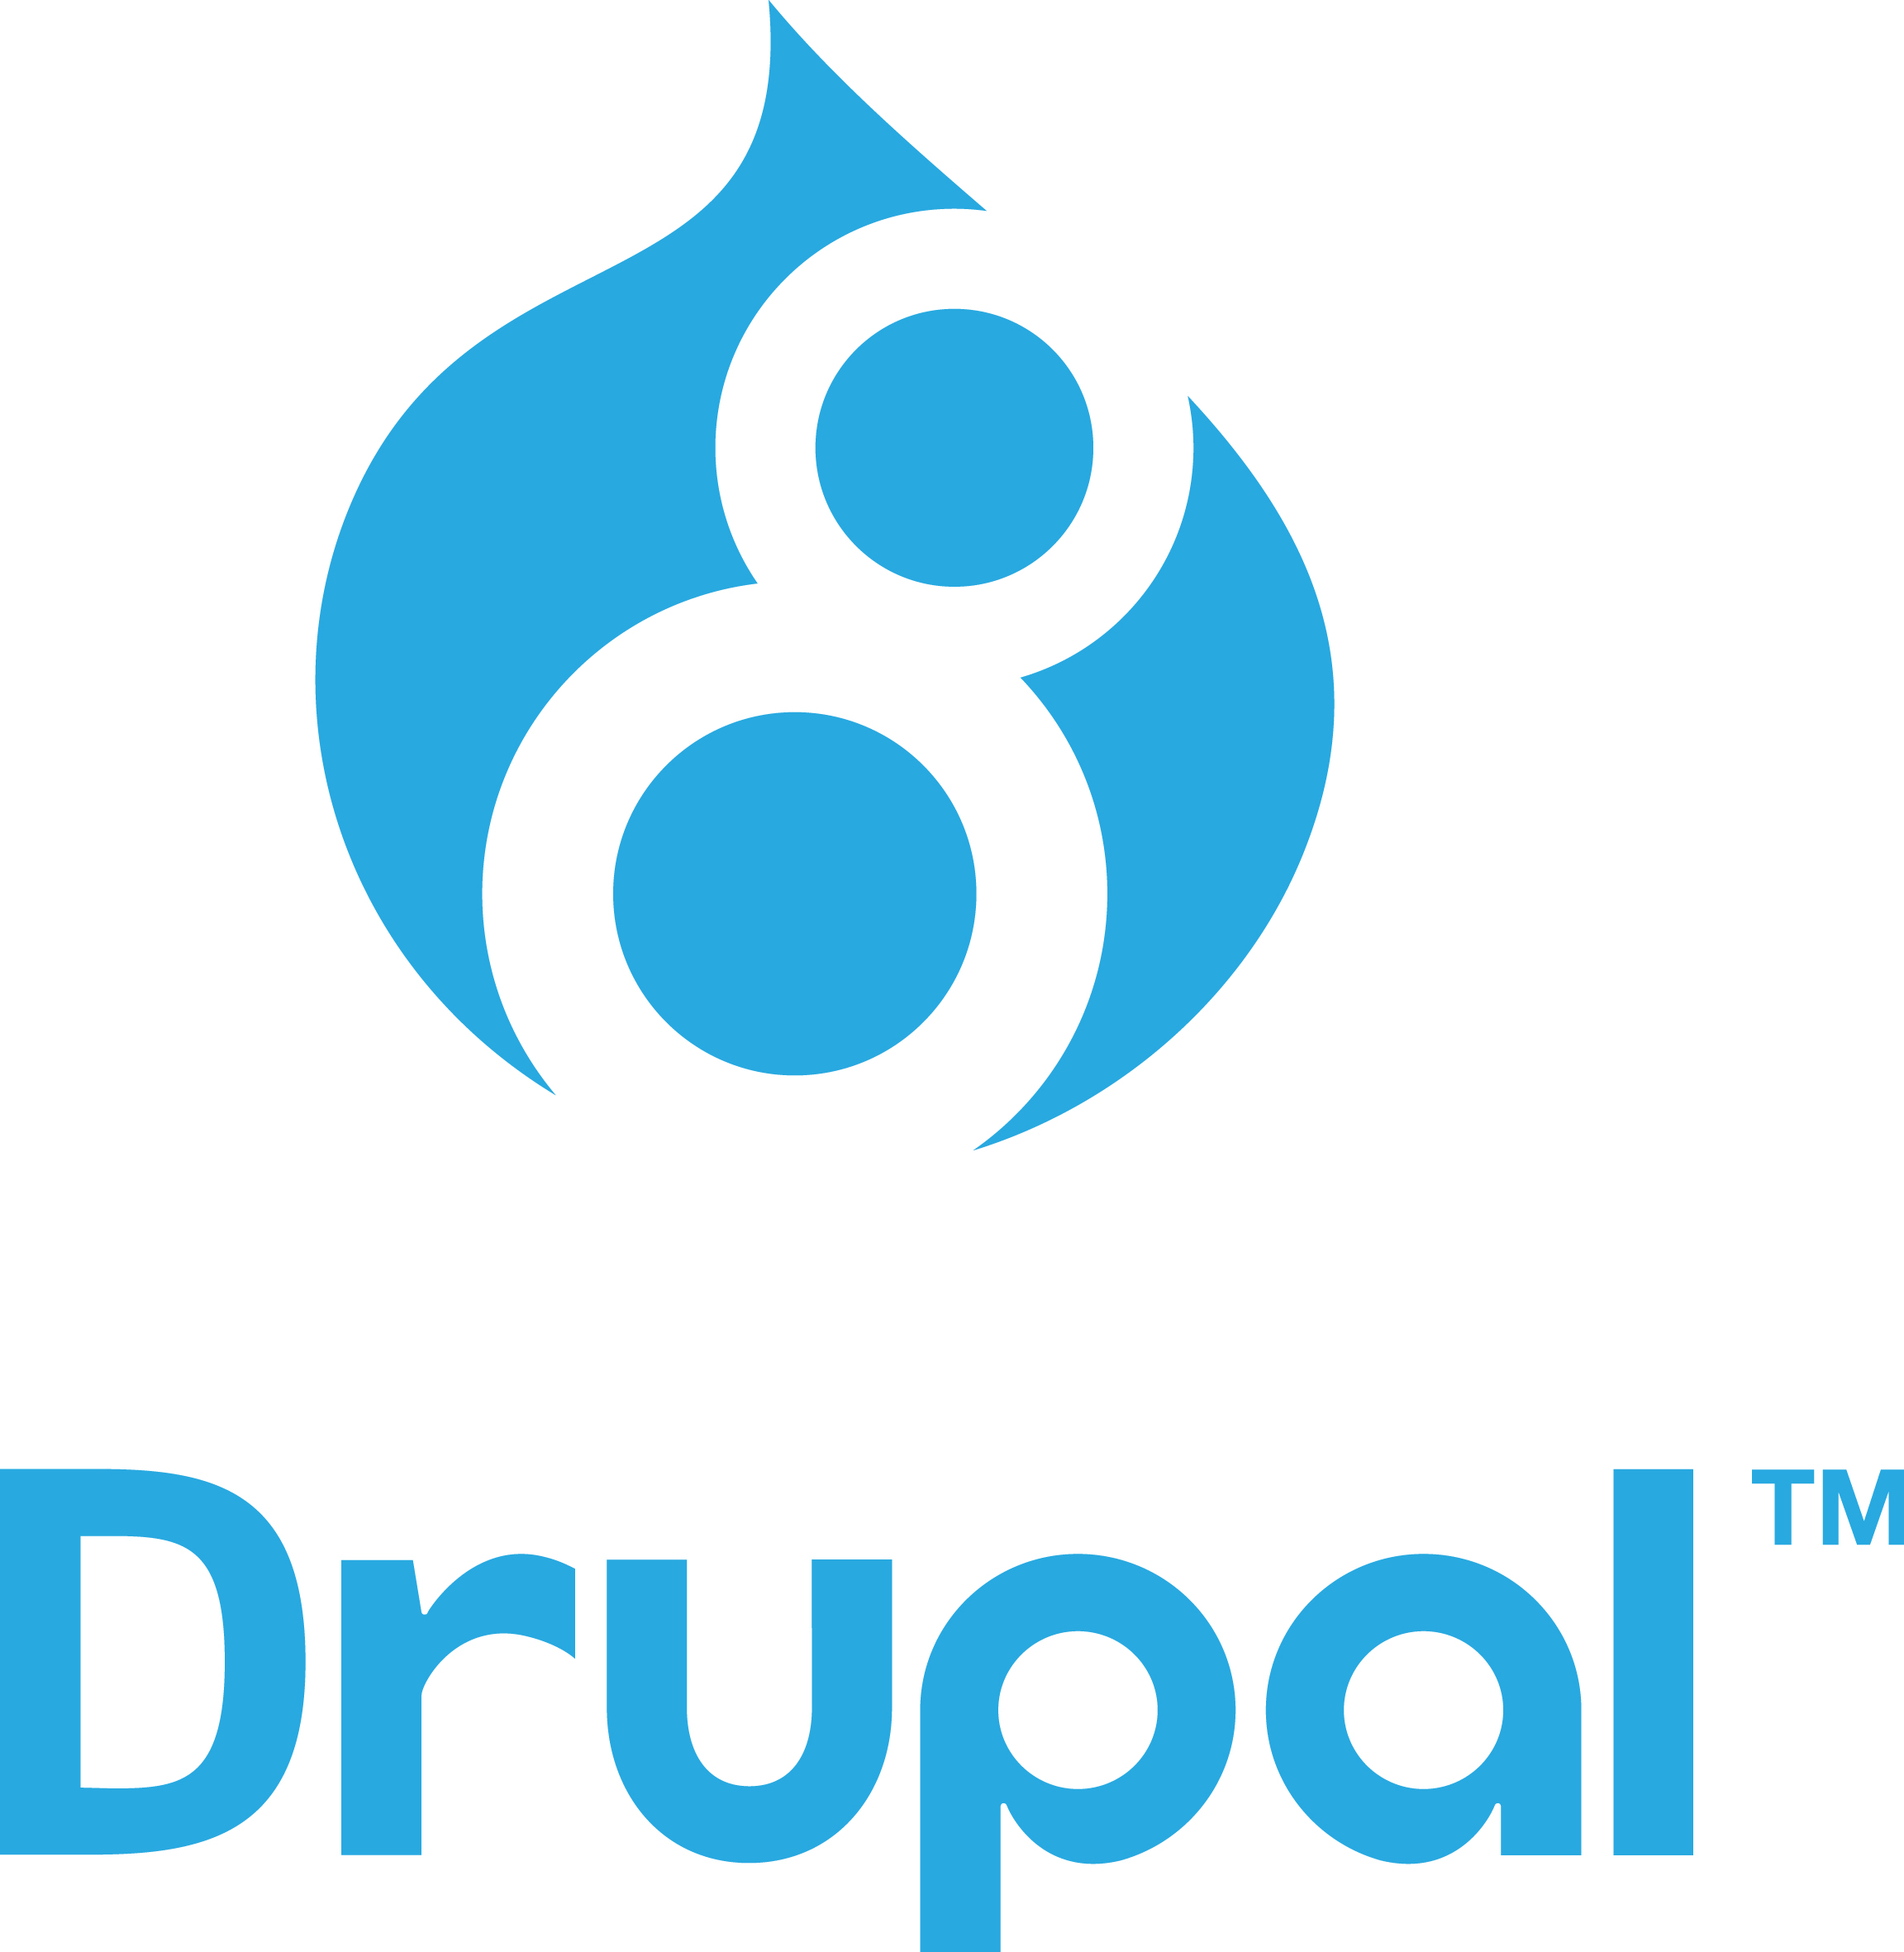 Drupal logo stacked